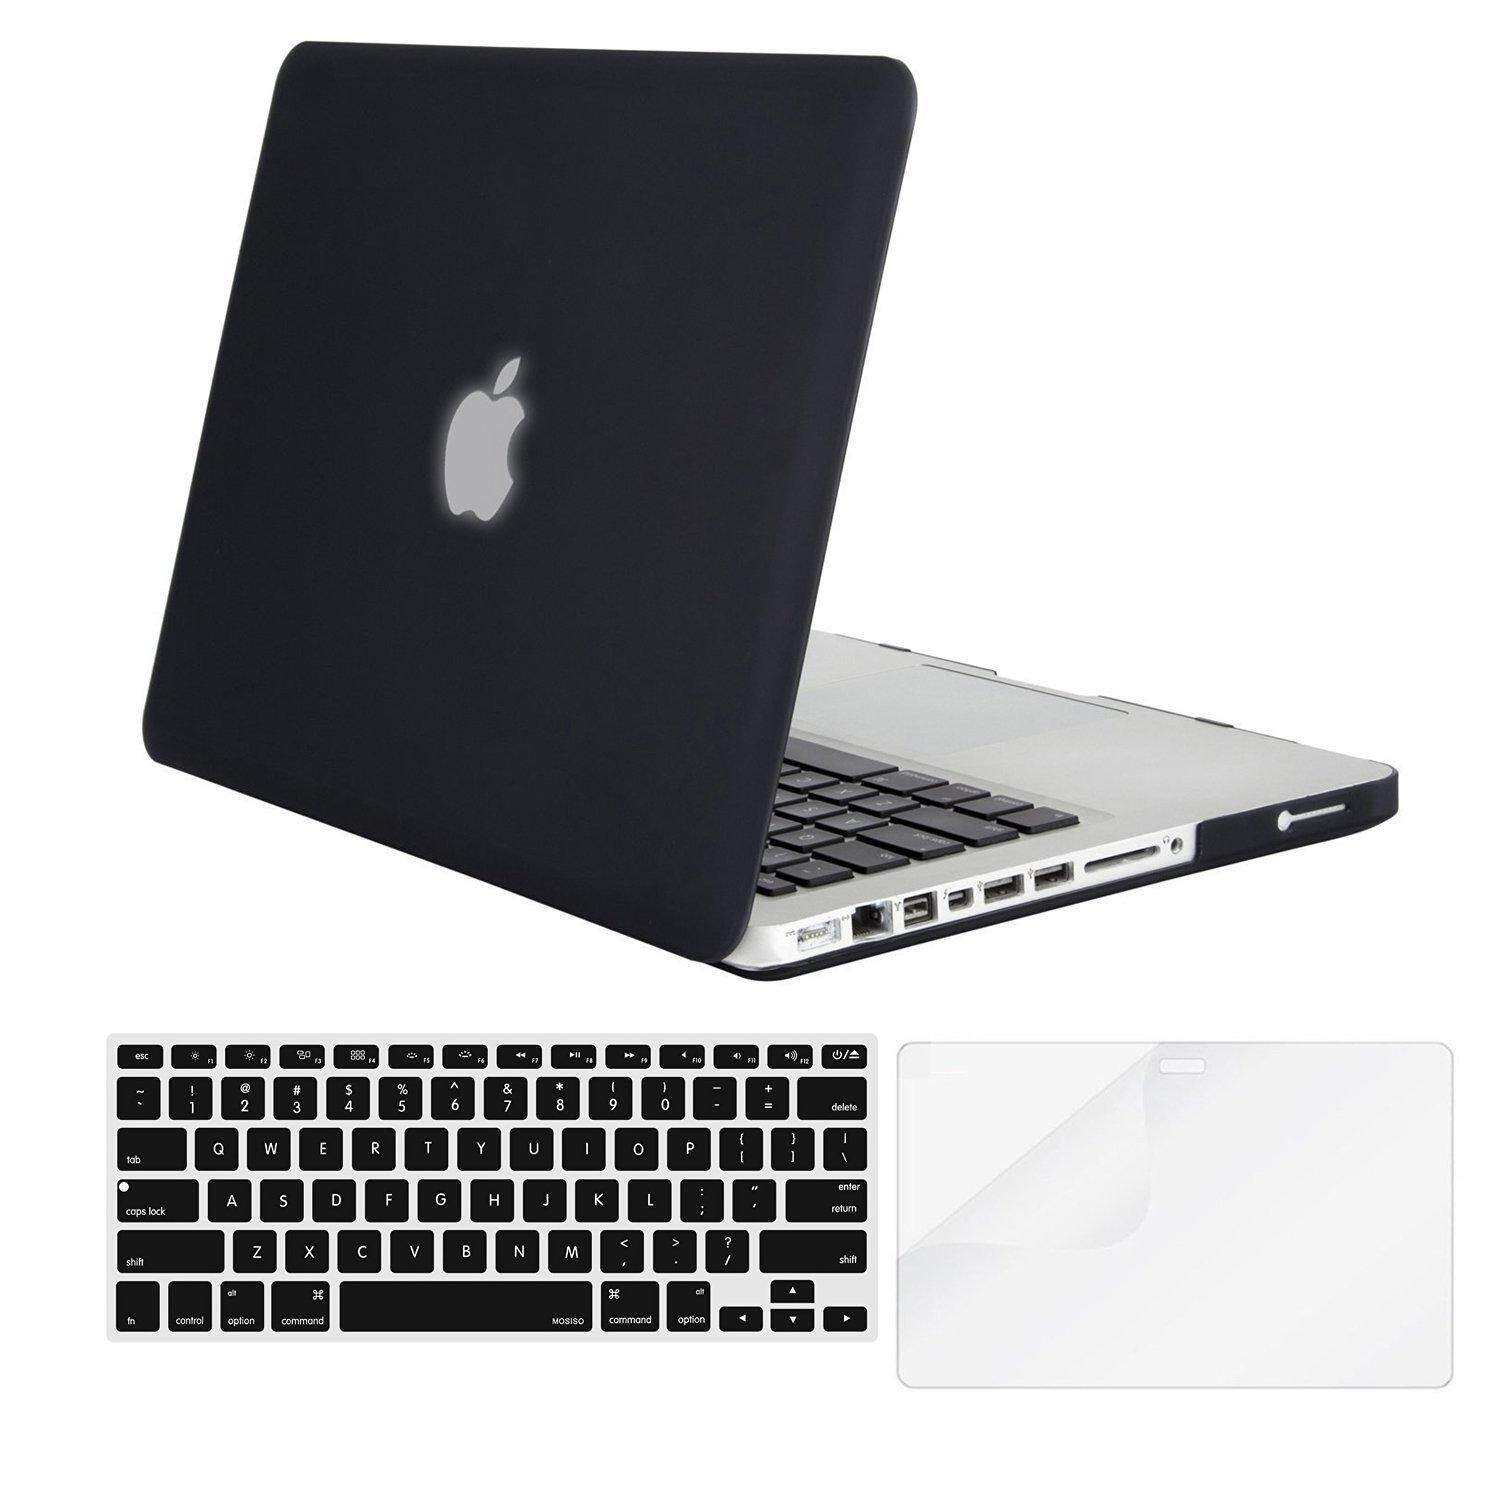 Macbook Case Plastic Hard Shell Case With Keyboard Cover With Screen Protector Only Compatible Old Macbook Pro 13 Inch (a1278, With Cd-Rom), Release Early 2012/2011/2010/2009/2008.